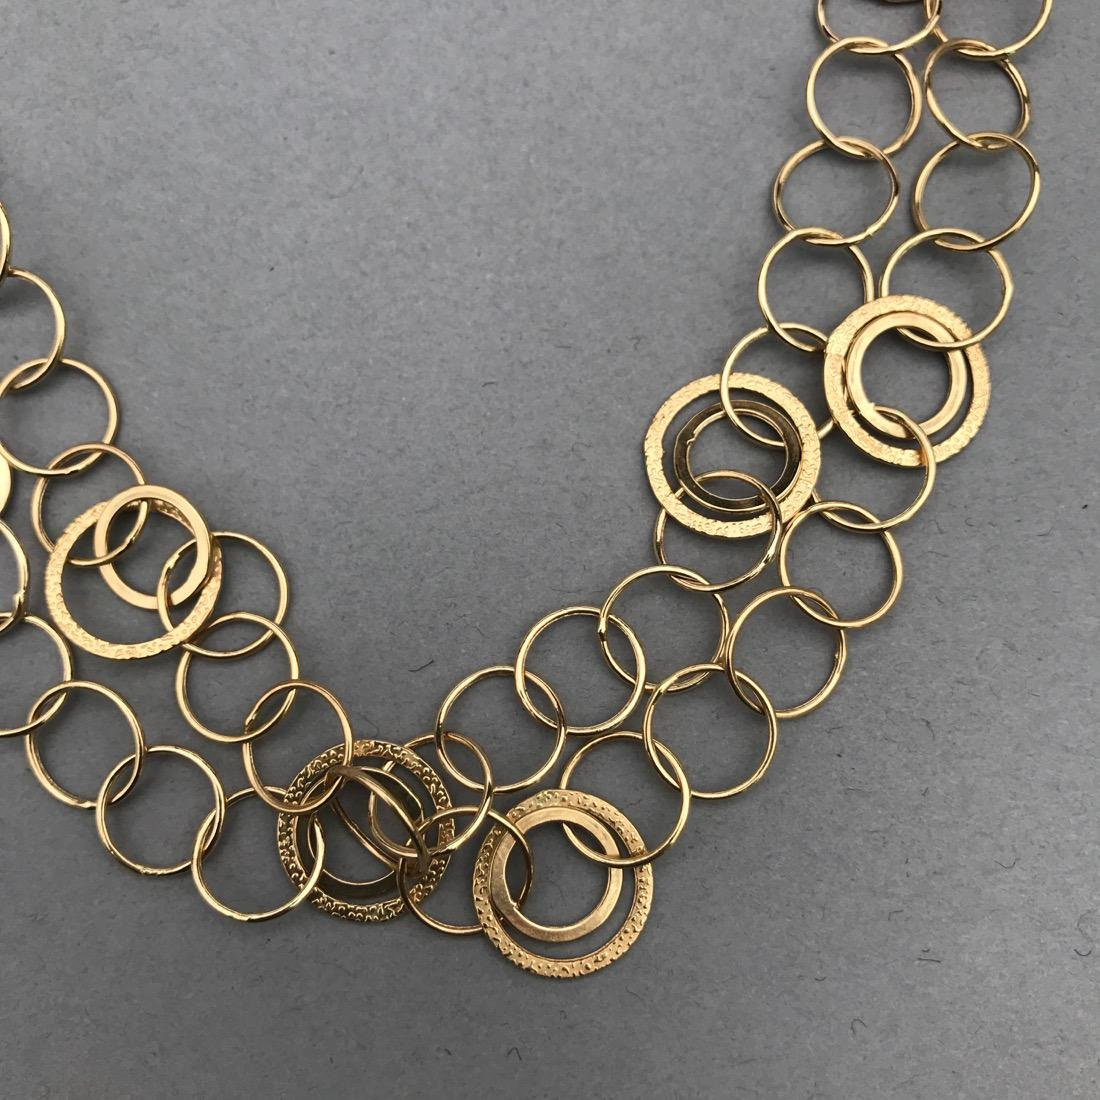 14K Gold Circle Necklace - 2